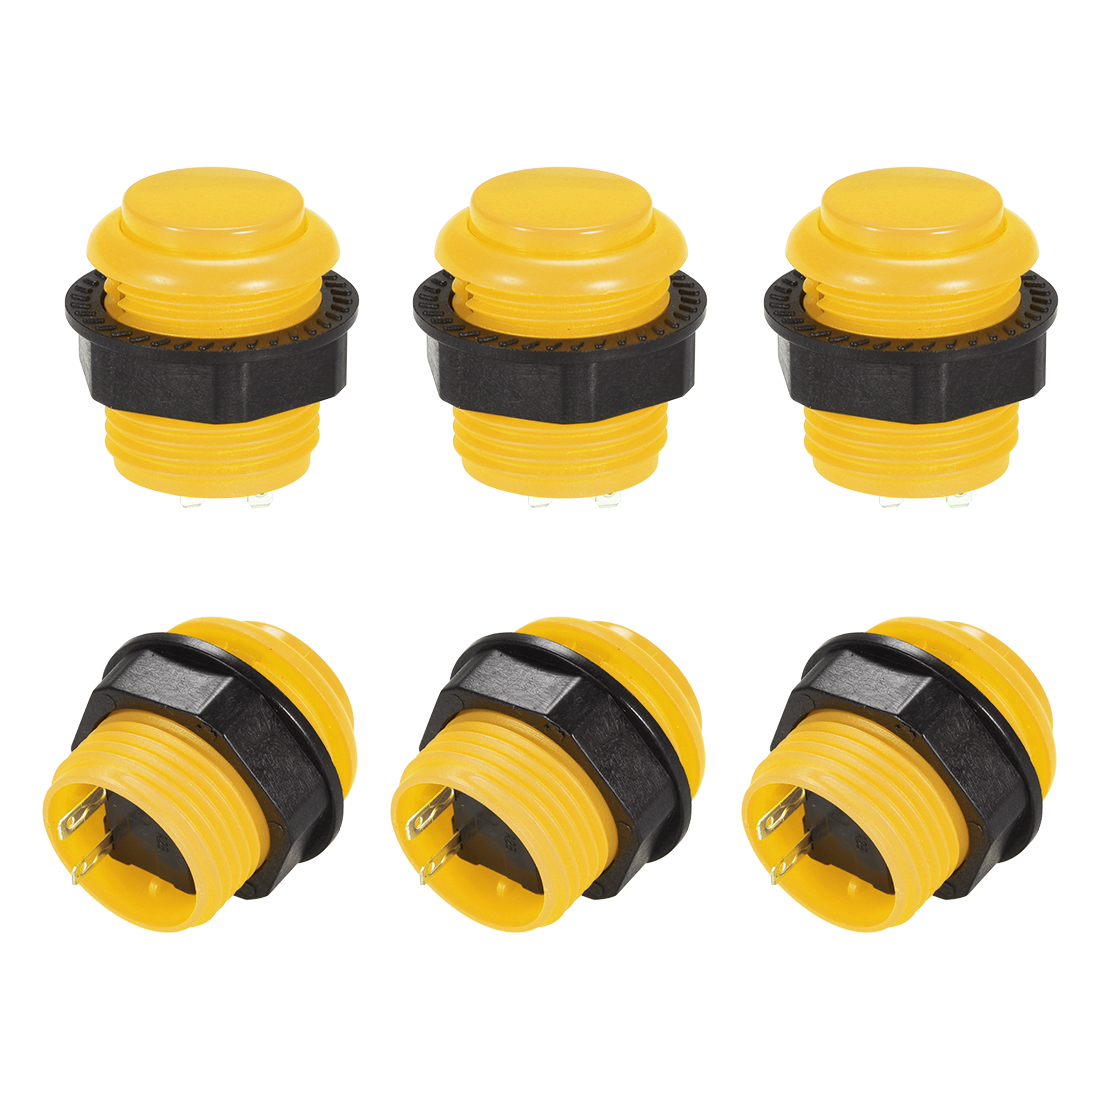 23.6mm Momentary Game Push Button Switch for Arcade Video Games Yellow 4pcs